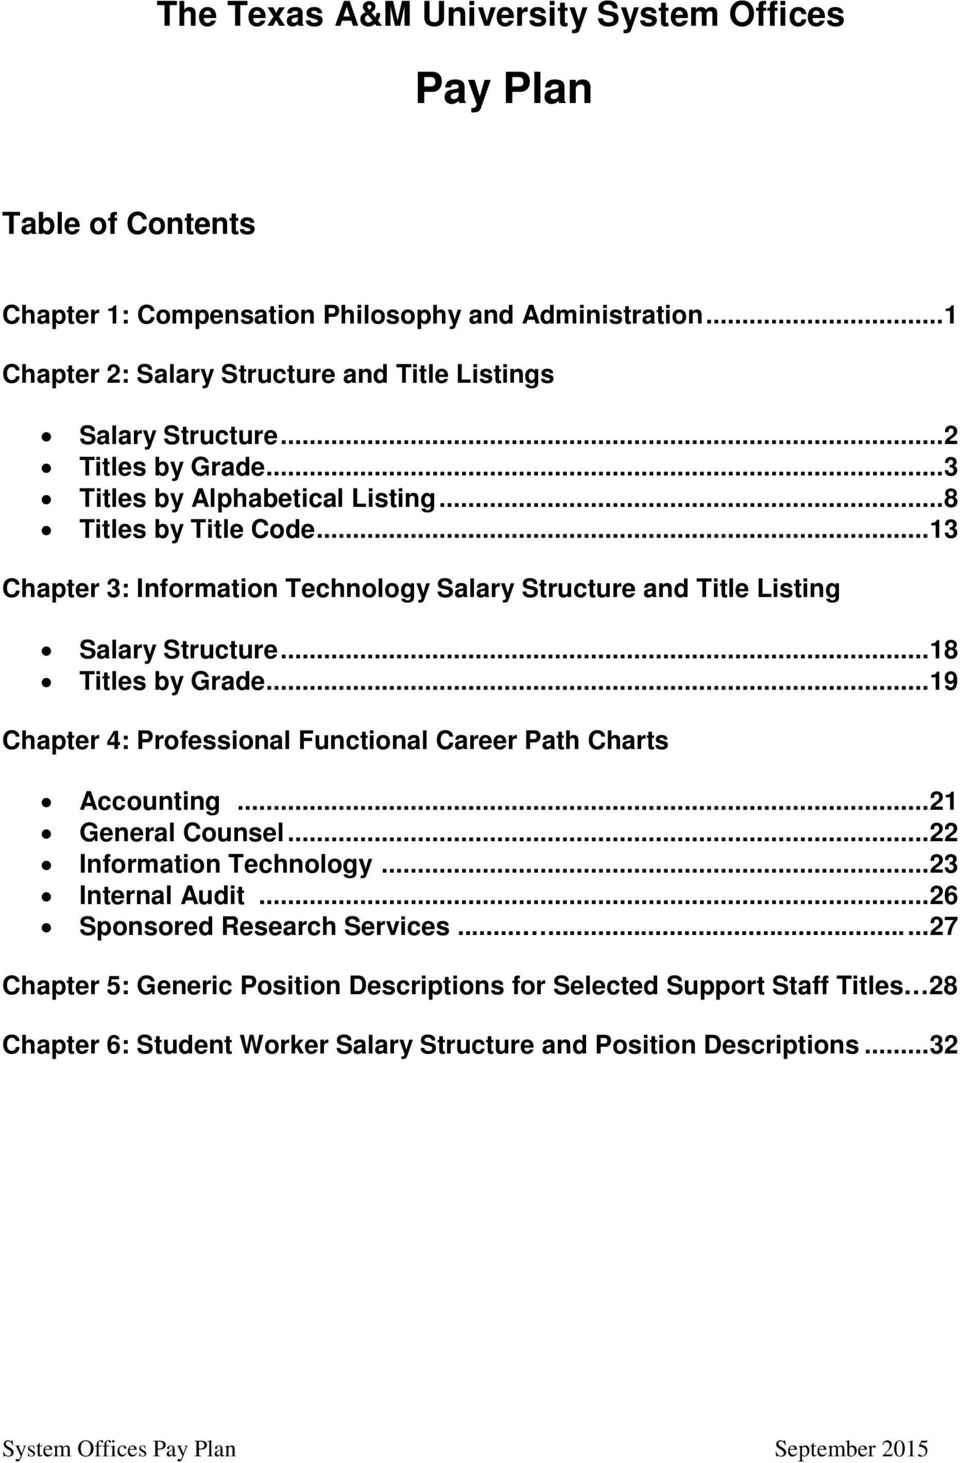 THE TEXAS A&M UNIVERSITY SYSTEM  System Offices  Pay Plan - PDF